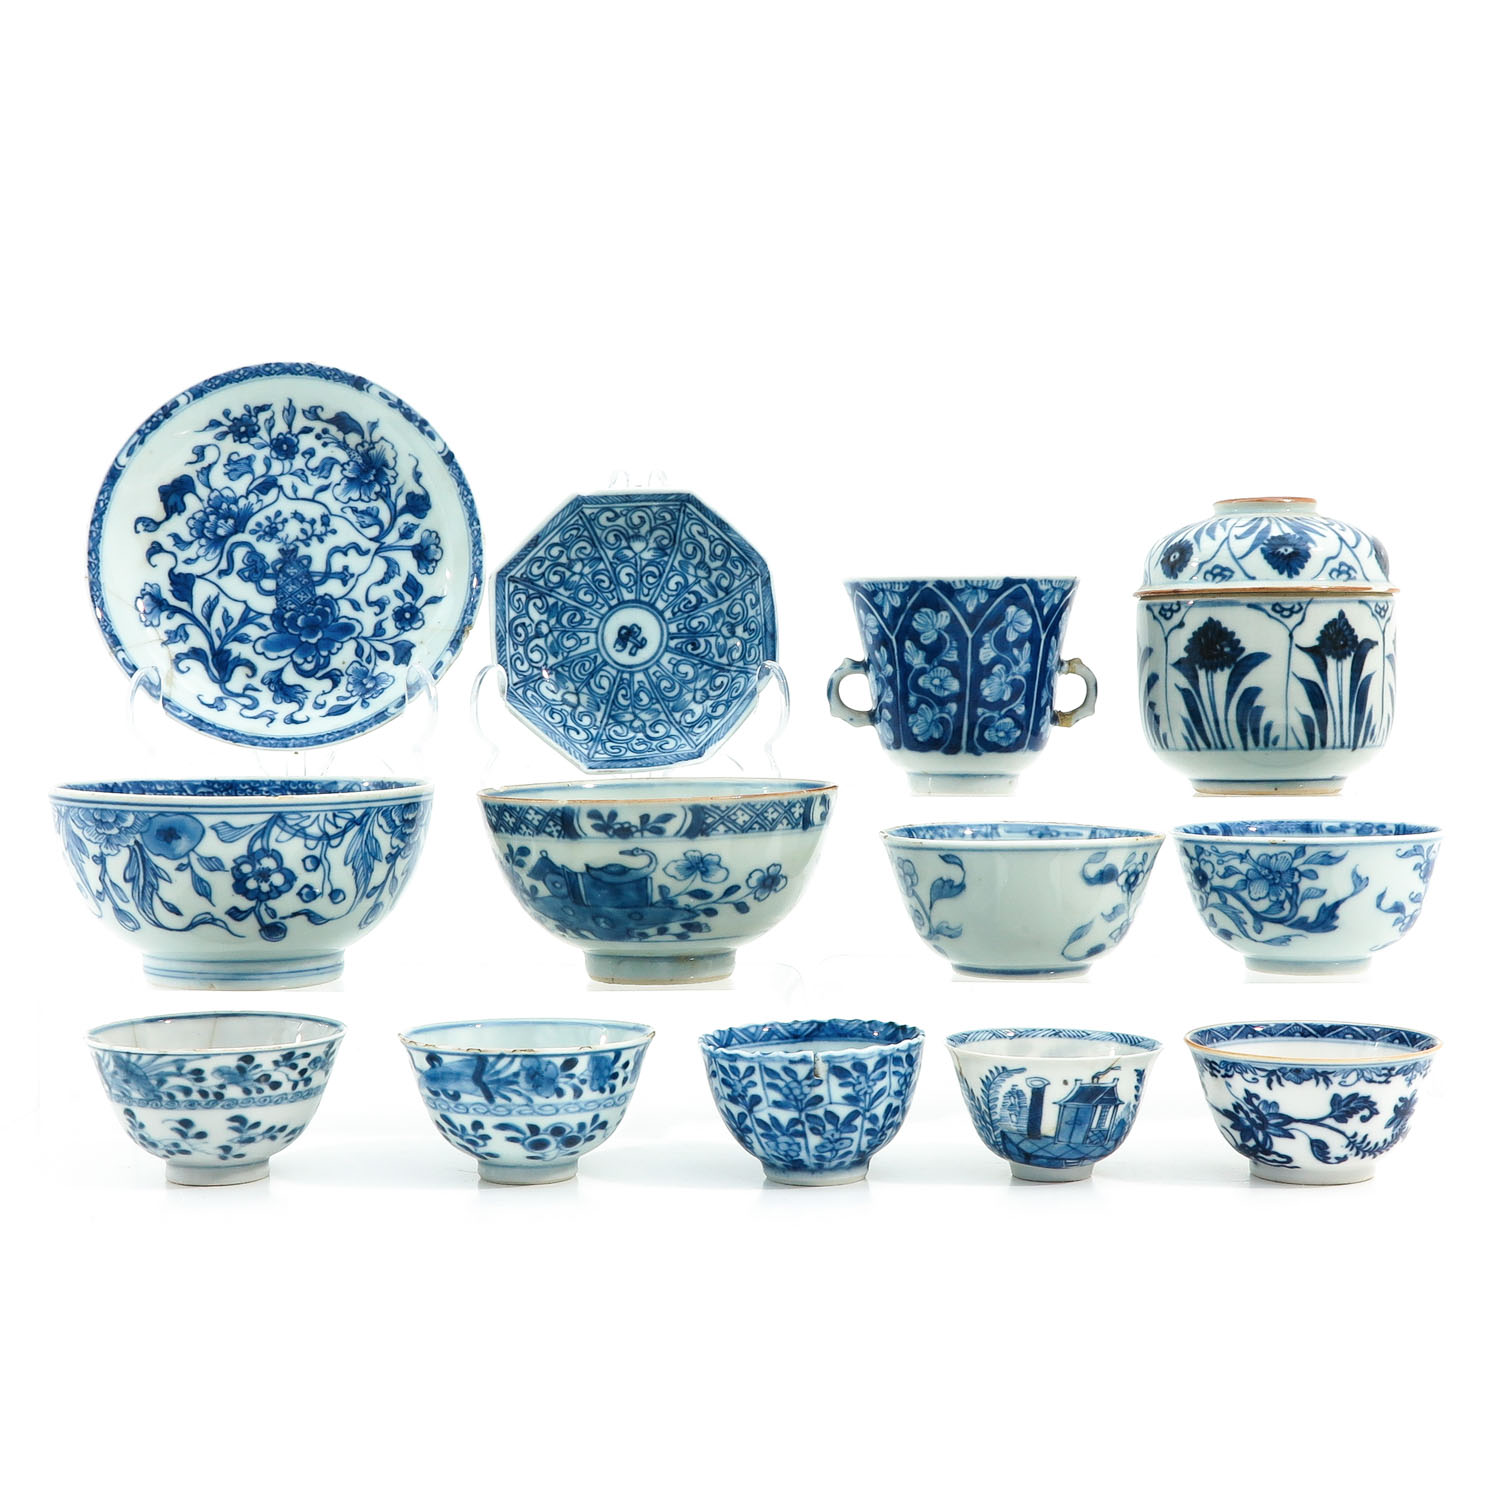 A Diverse Collection of Porcelain - Image 3 of 9